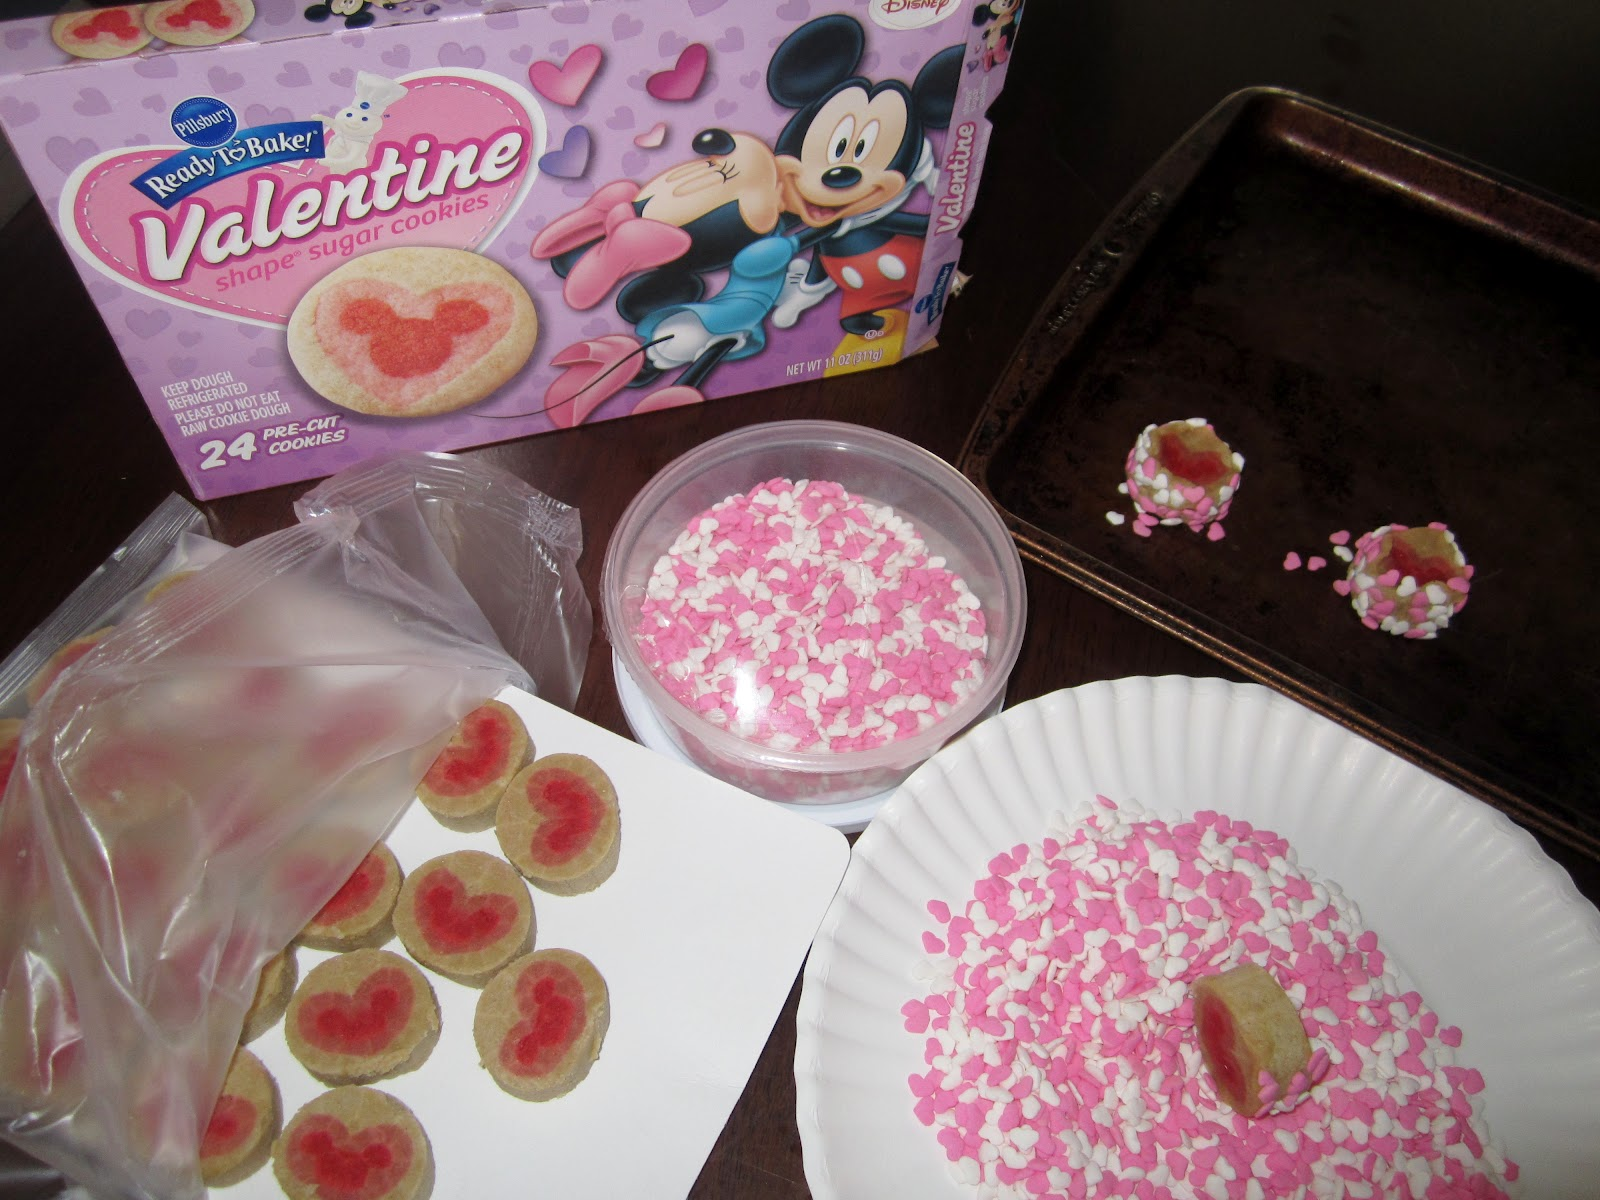 new valentines day pillsbury ready to bake shape cookies review giveaway myblogspark